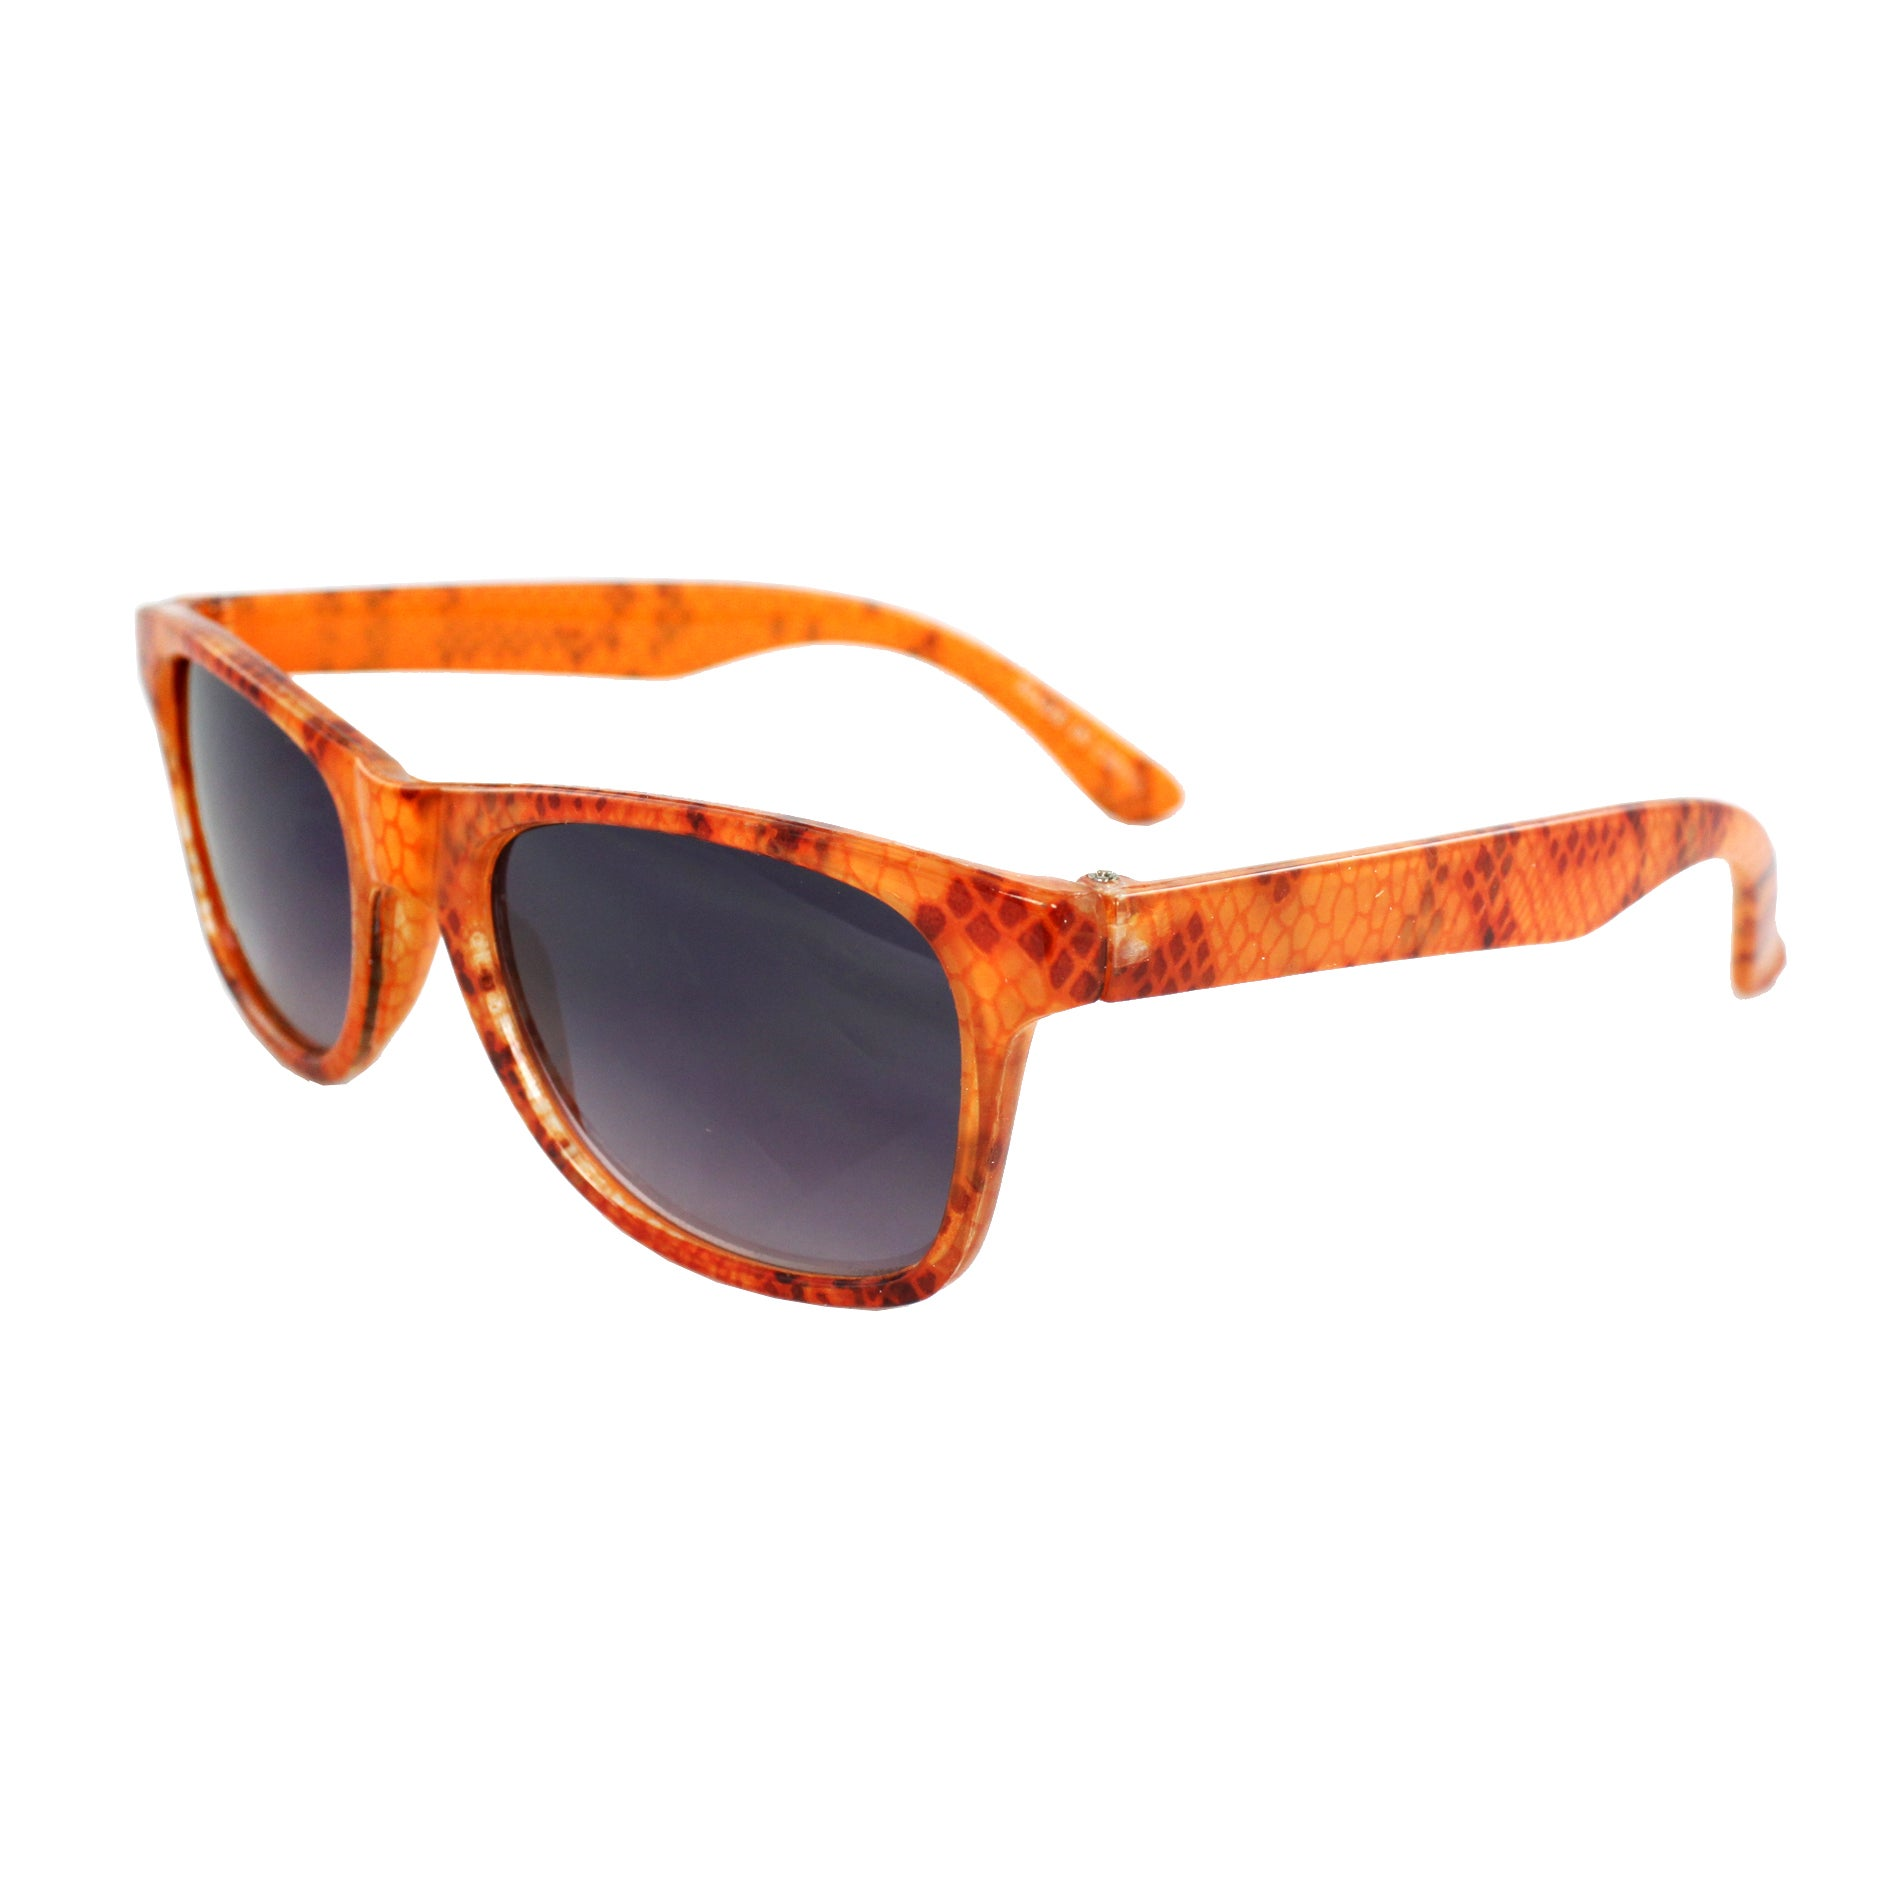 Kid's K3115-ORPB Oval Orange Frame Sunglasses with Black Shatter Design